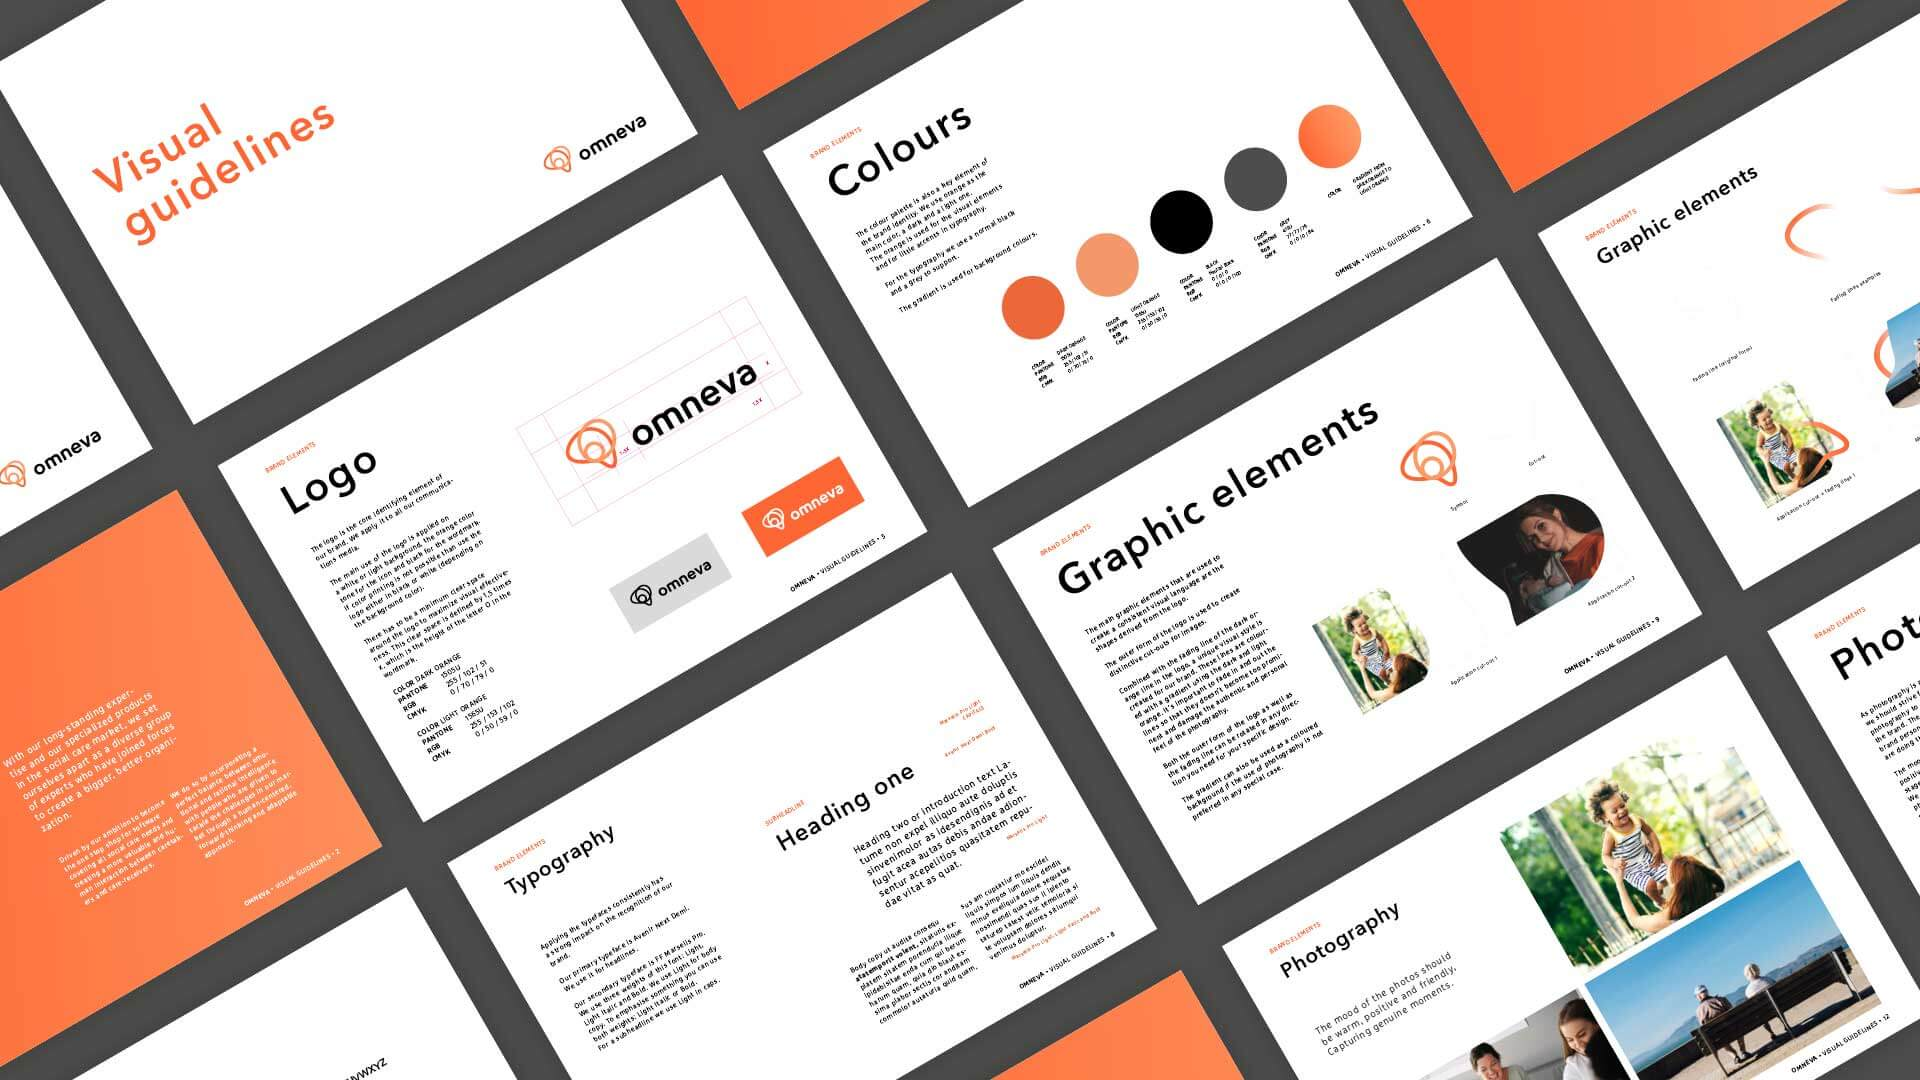 Overview of different Pages in the Visual Guidelines for omneva